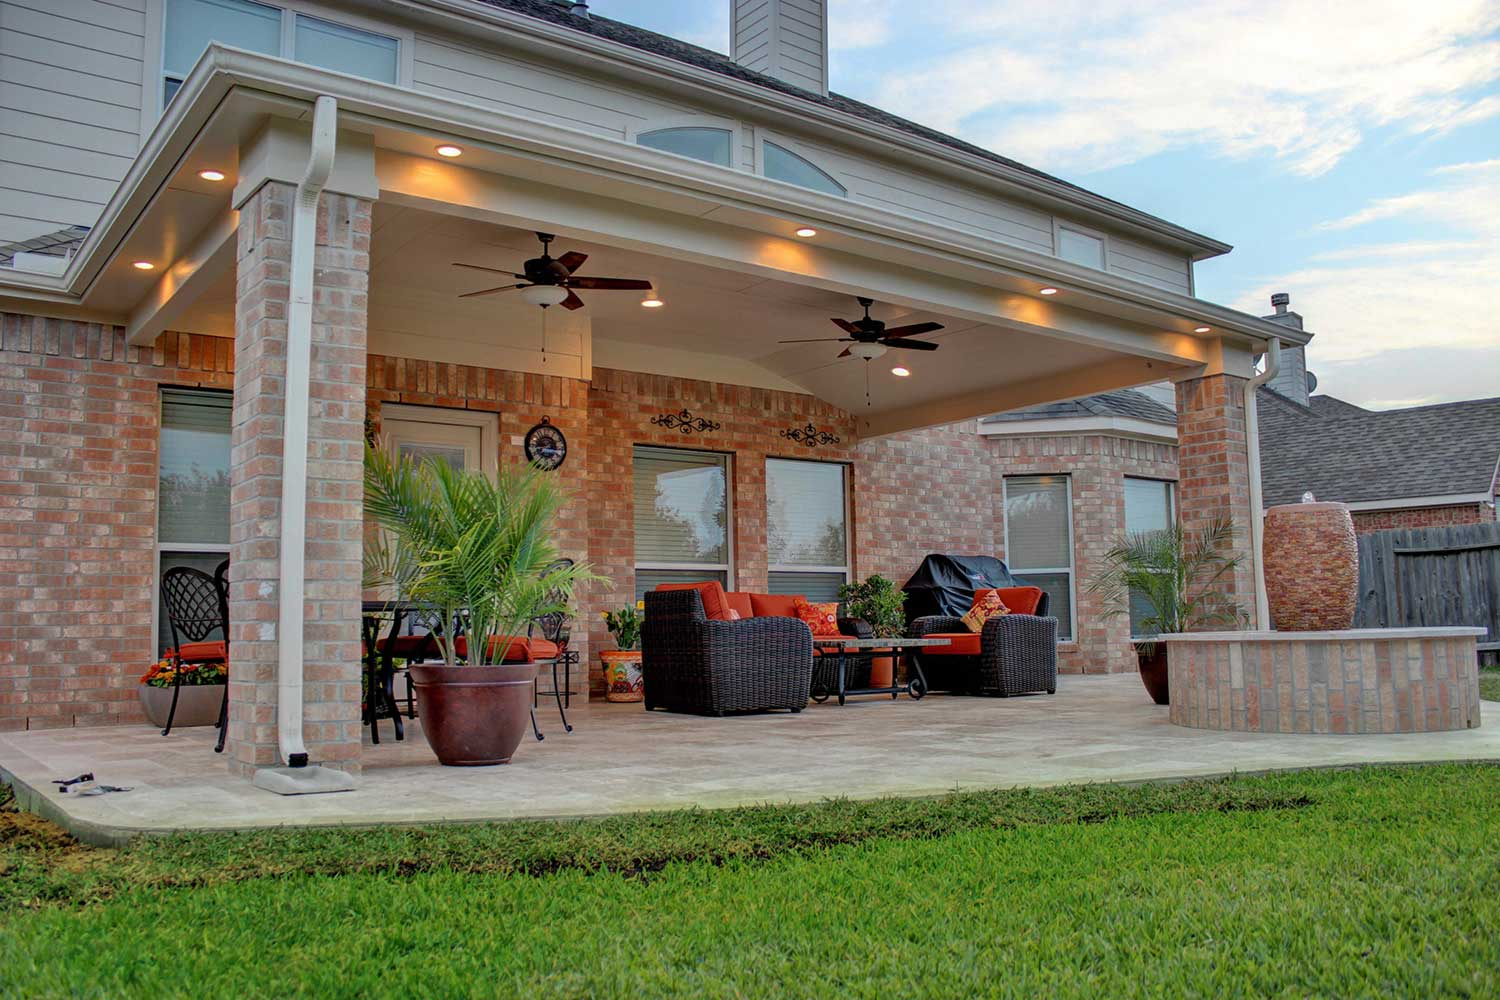 Patio Cover in Cypress, TX - HHI Patio Covers on Backyard Patio Cover Ideas  id=84632